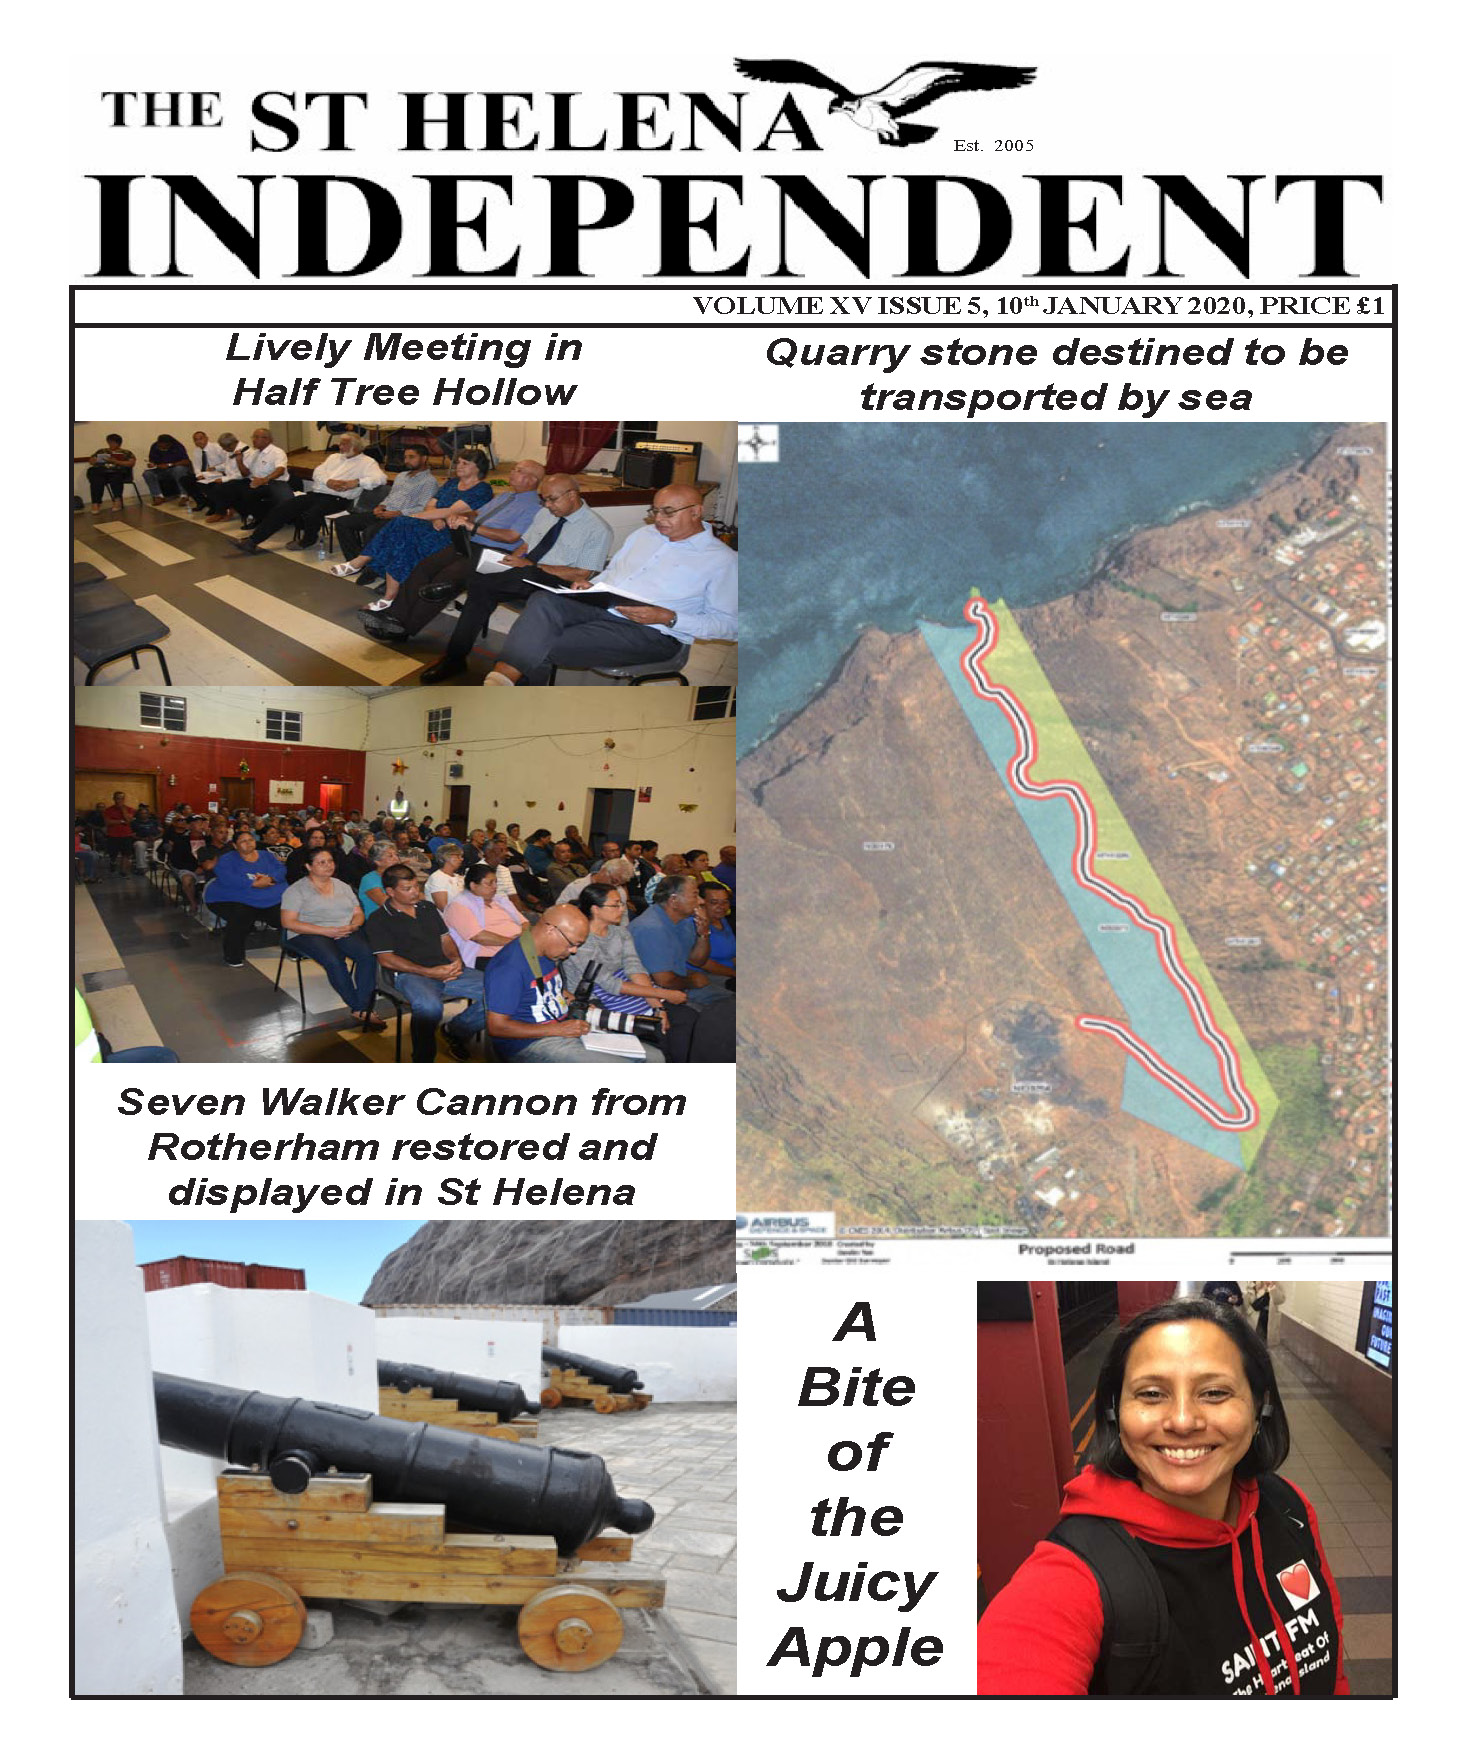 St Helena Independent 20200110